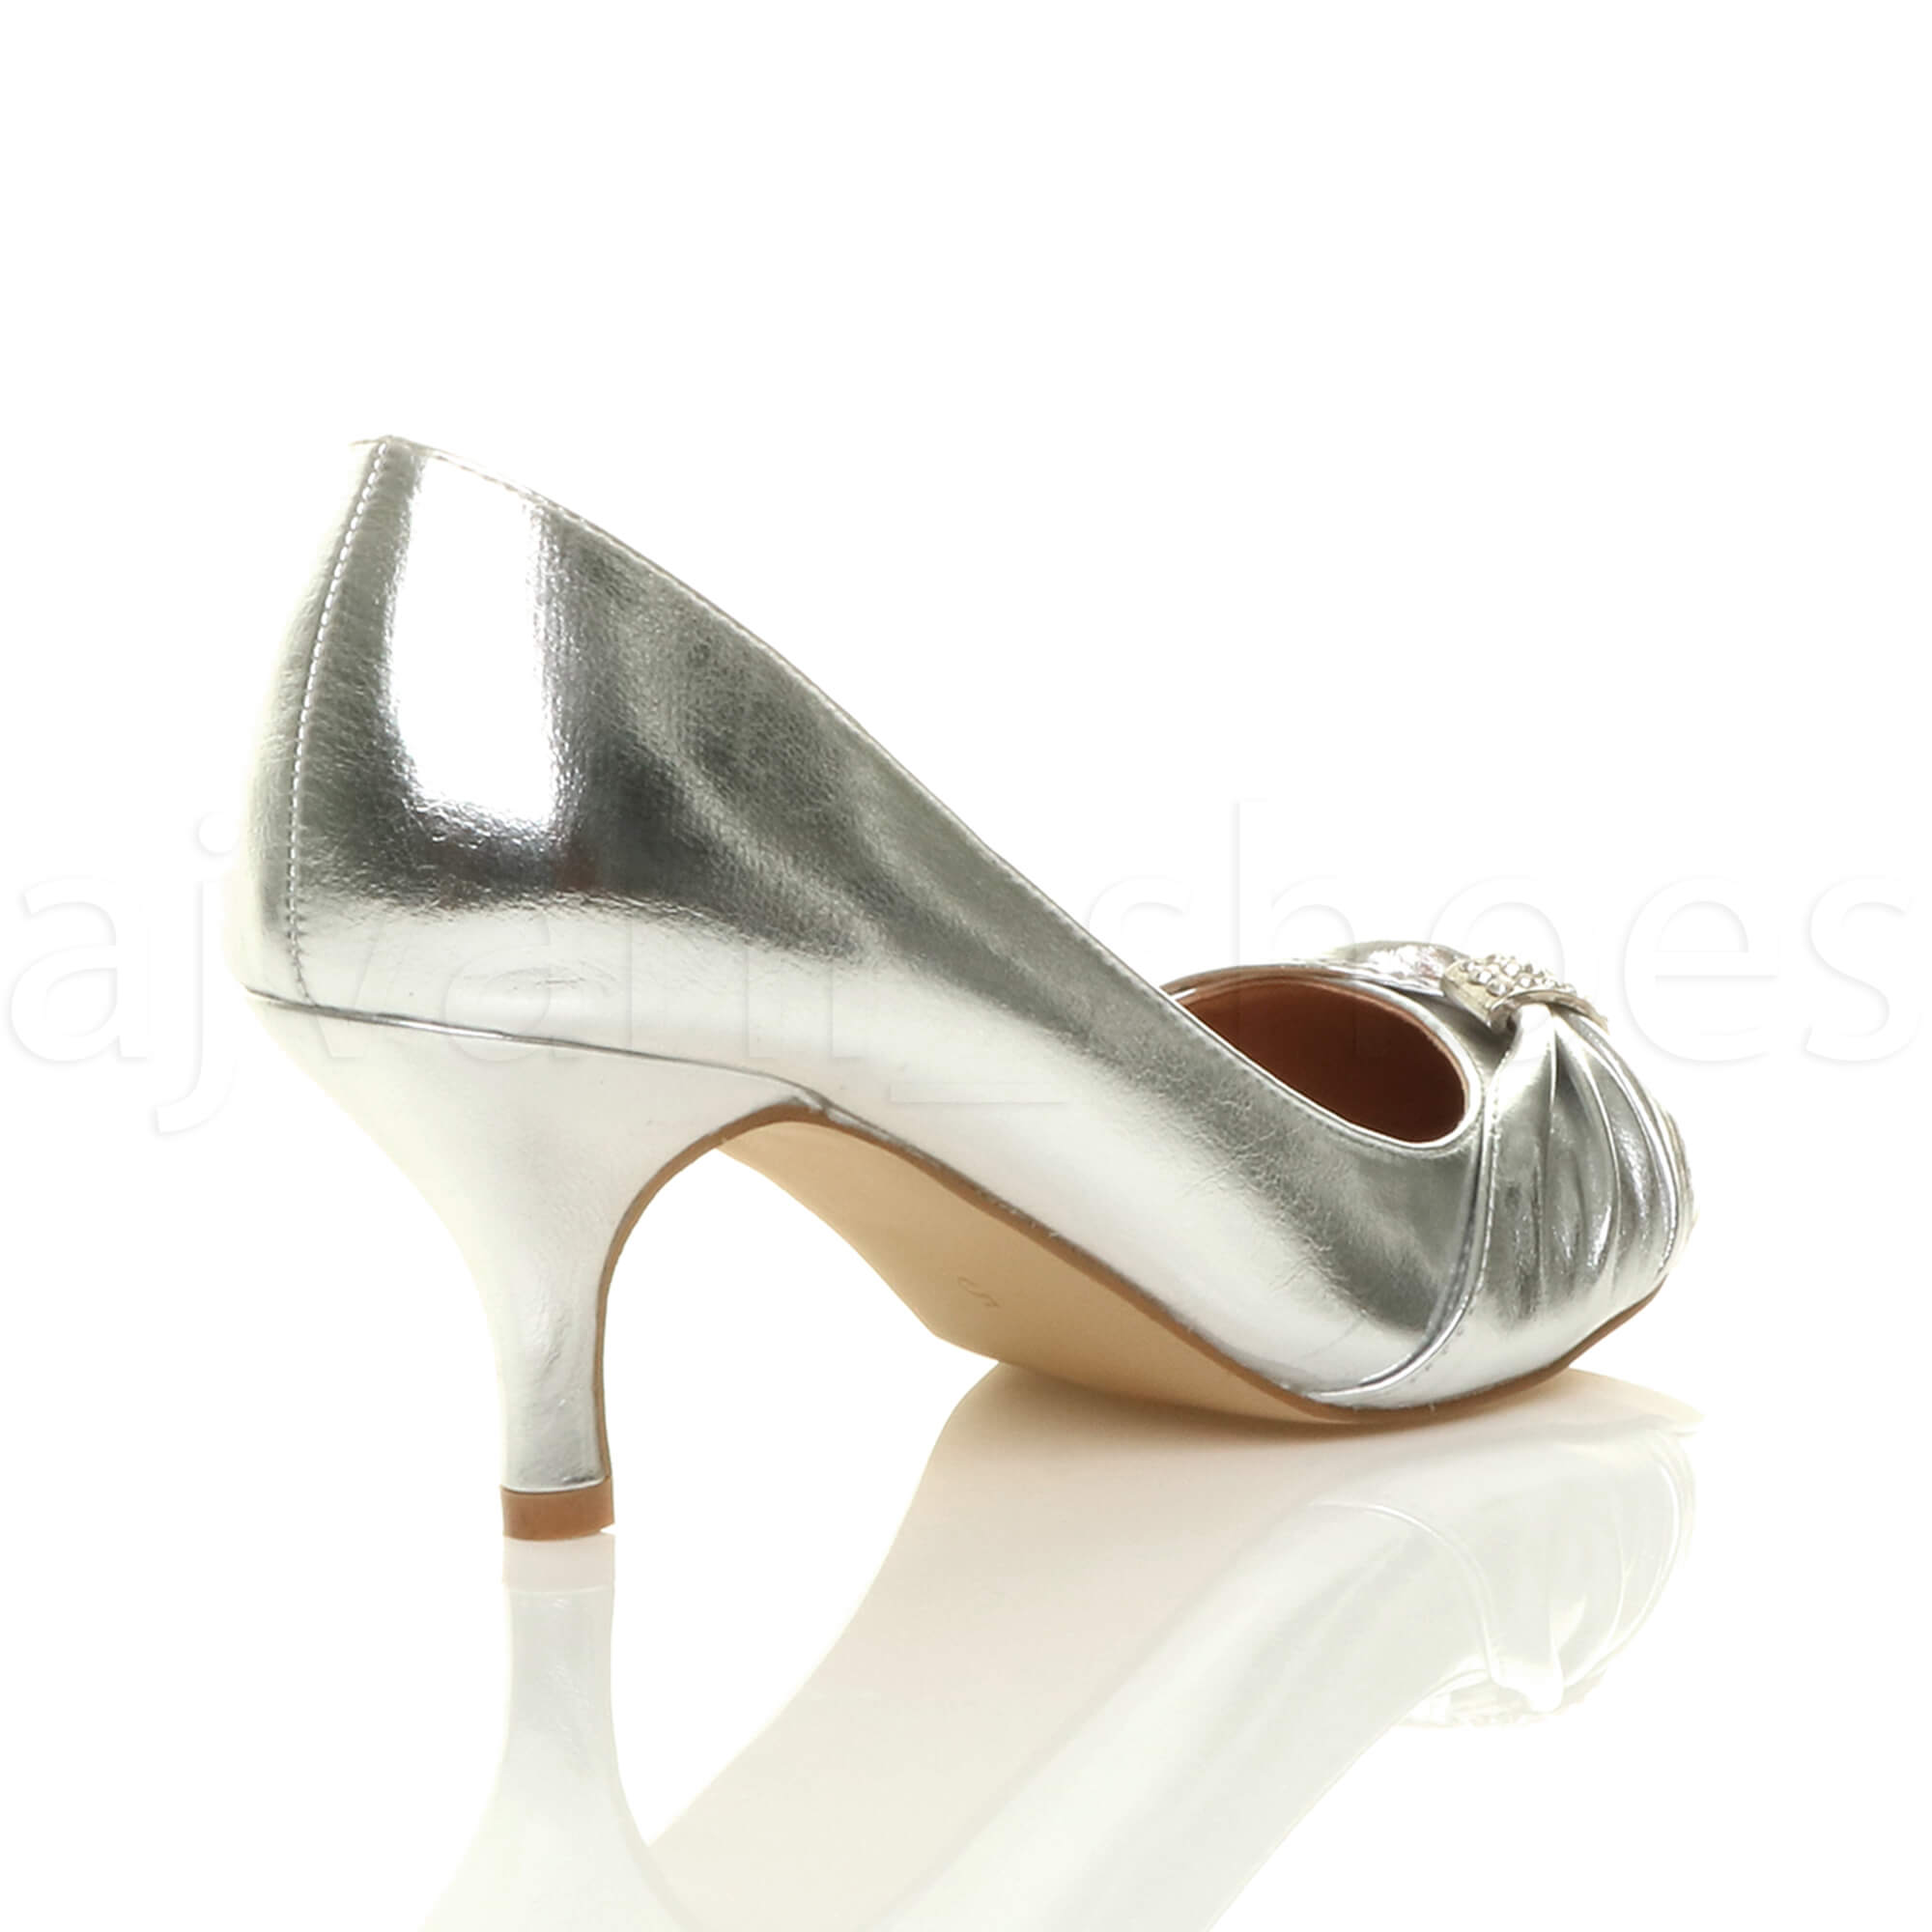 WOMENS-LADIES-MID-HEEL-RUCHED-DIAMANTE-WEDDING-PROM-EVENING-COURT-SHOES-SIZE thumbnail 85